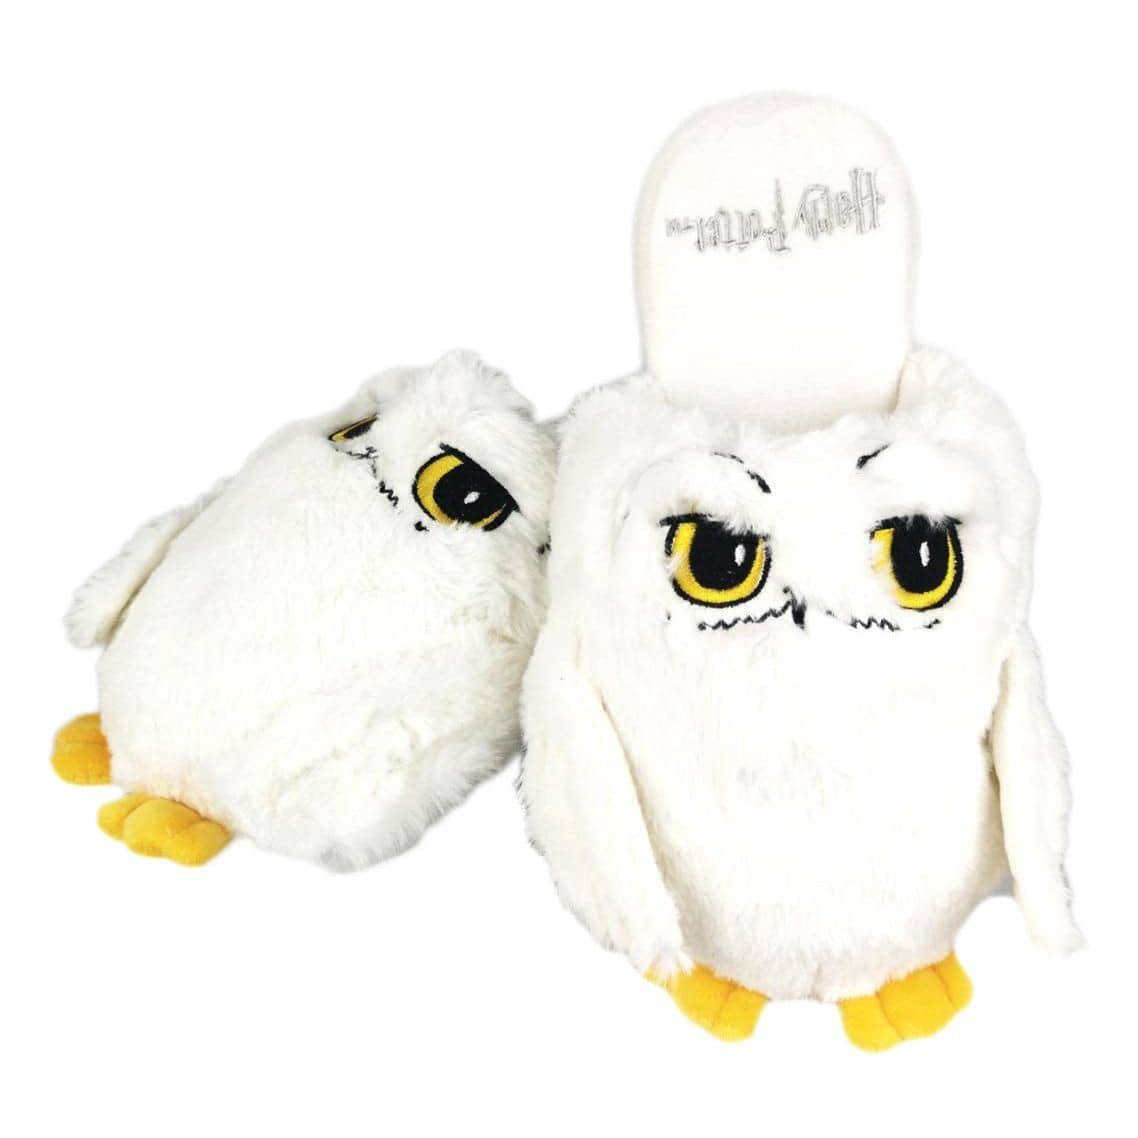 1 pair of ladies fluffy white Harry Potter Hedwig Owl Mule Slippers - One size